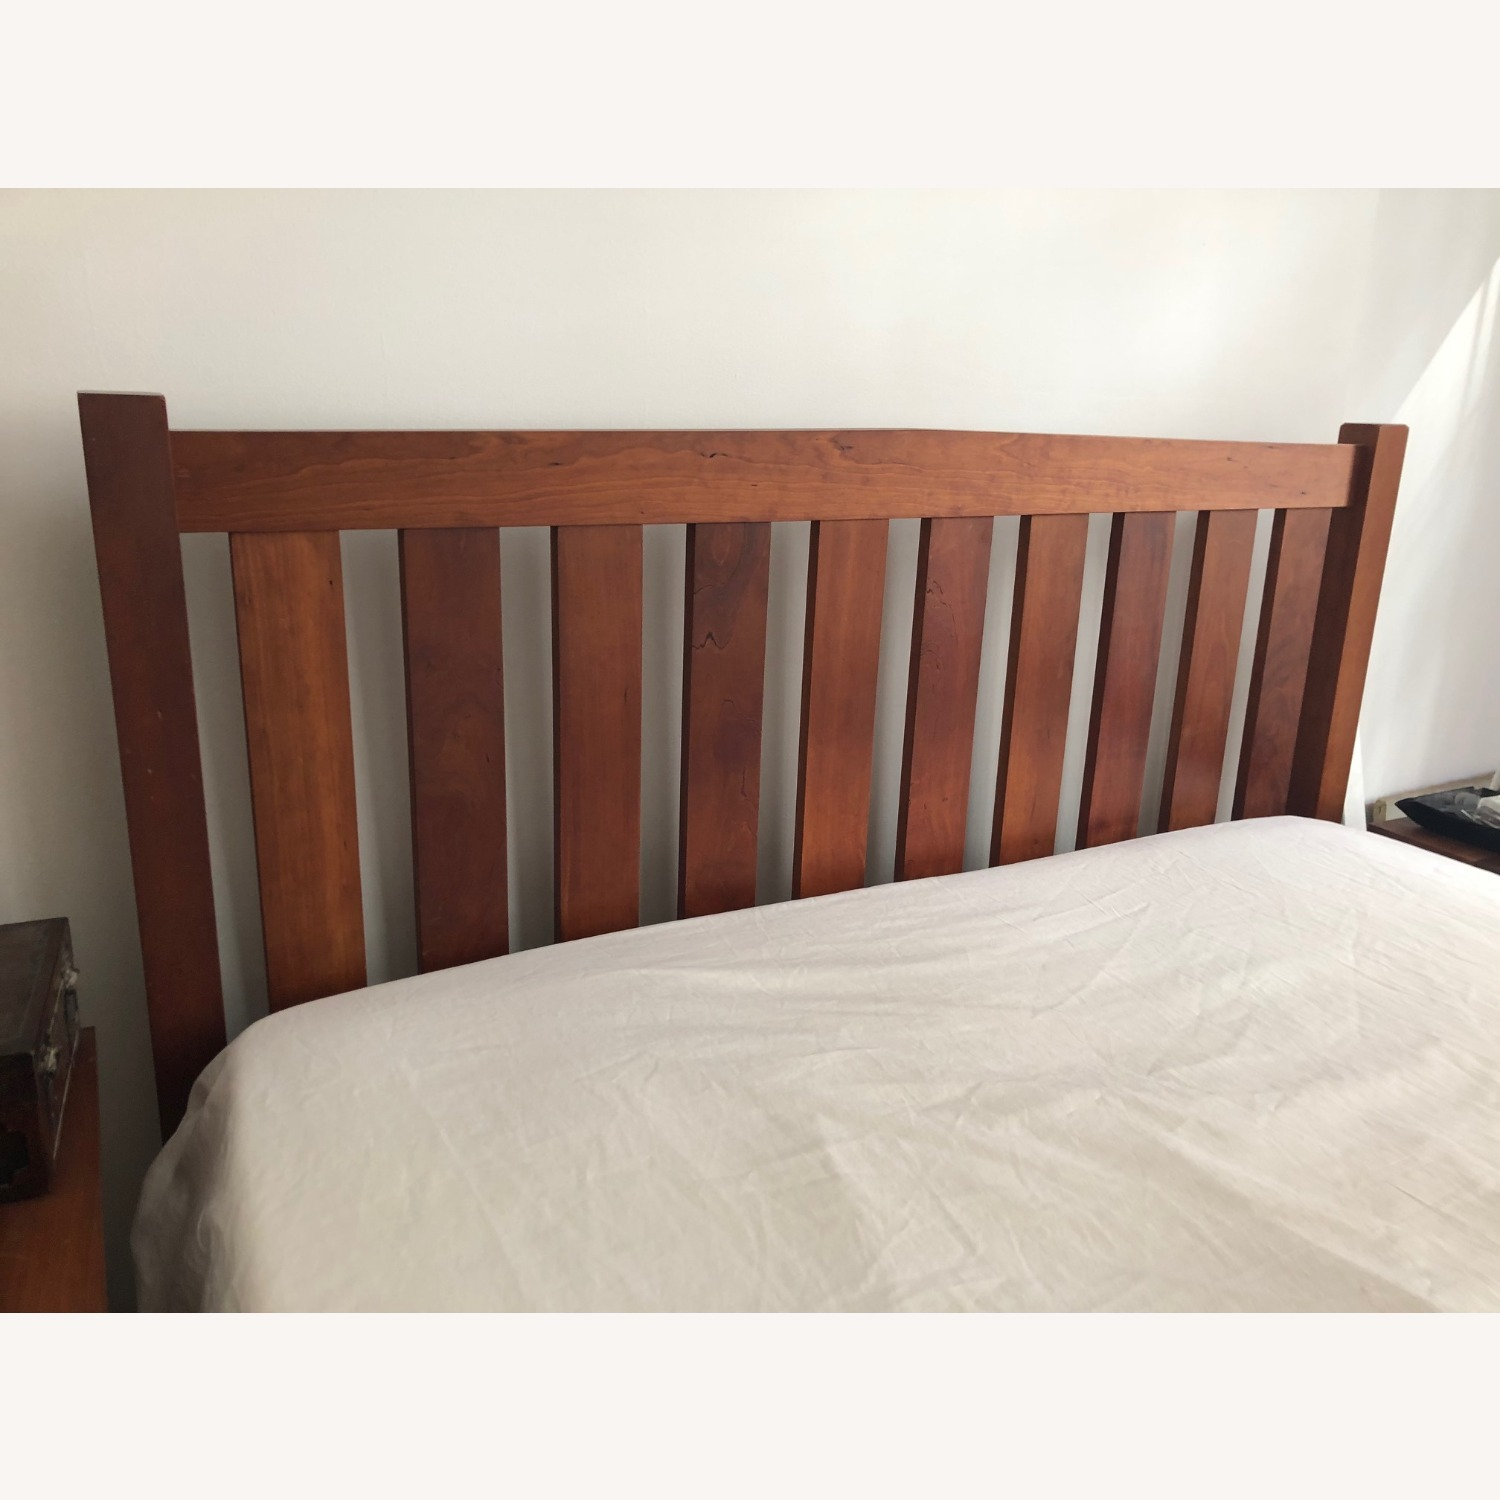 Solid Cherry Bed Frame and Headboard - image-1